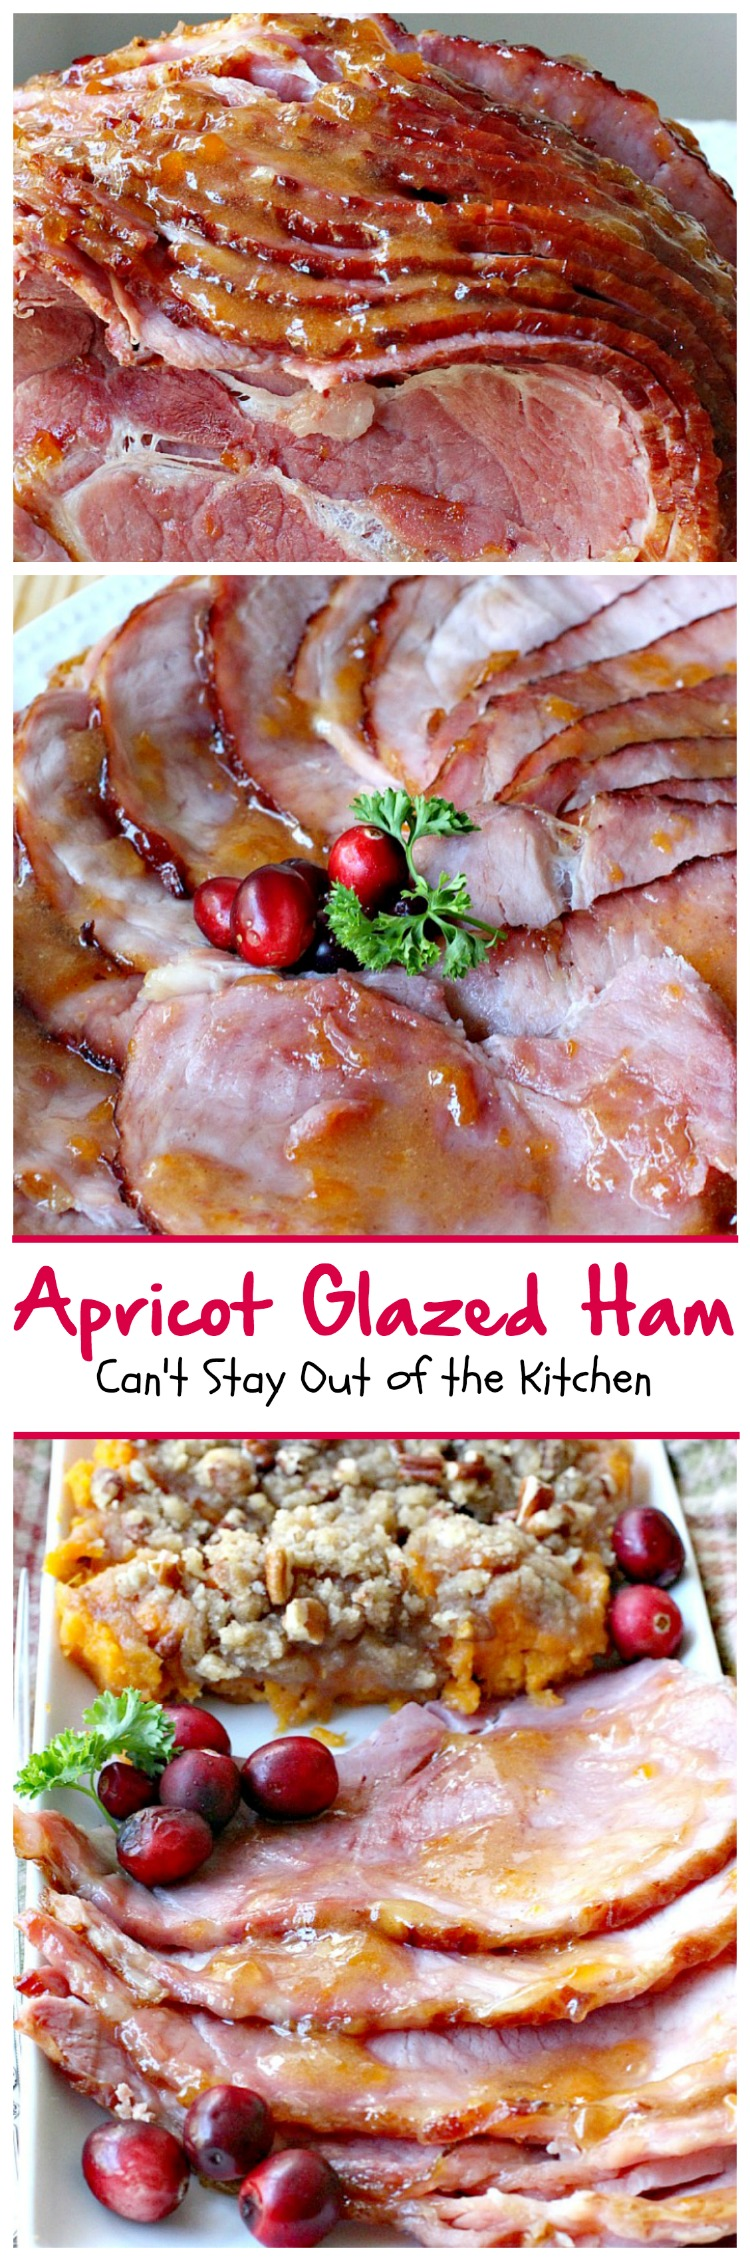 Apricot Glazed Ham | Can't Stay Out of the Kitchen